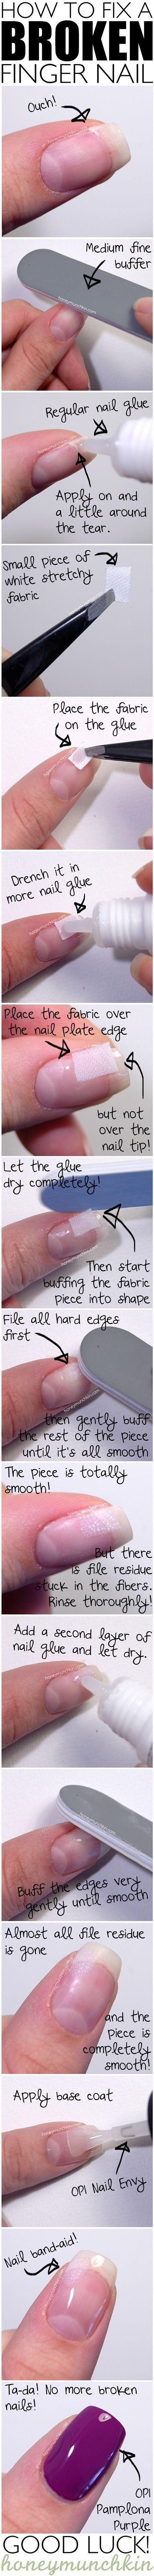 Finally - a fix for broken nails that actually works! #brokennail #fixed #problemsolved #quickfix